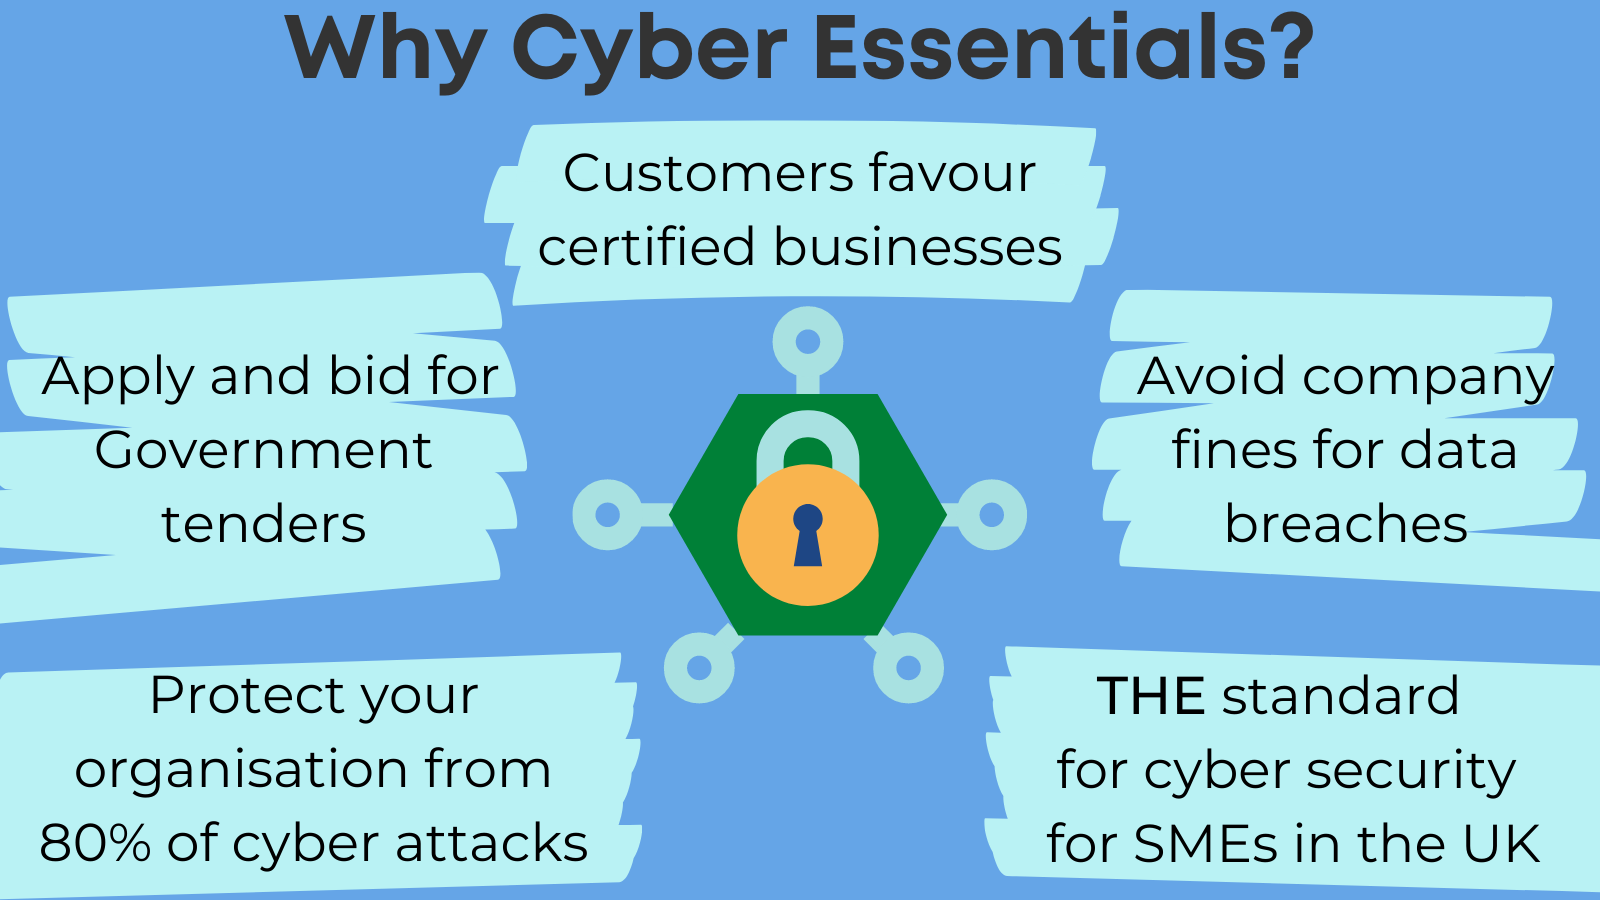 Why Cyber Essentials